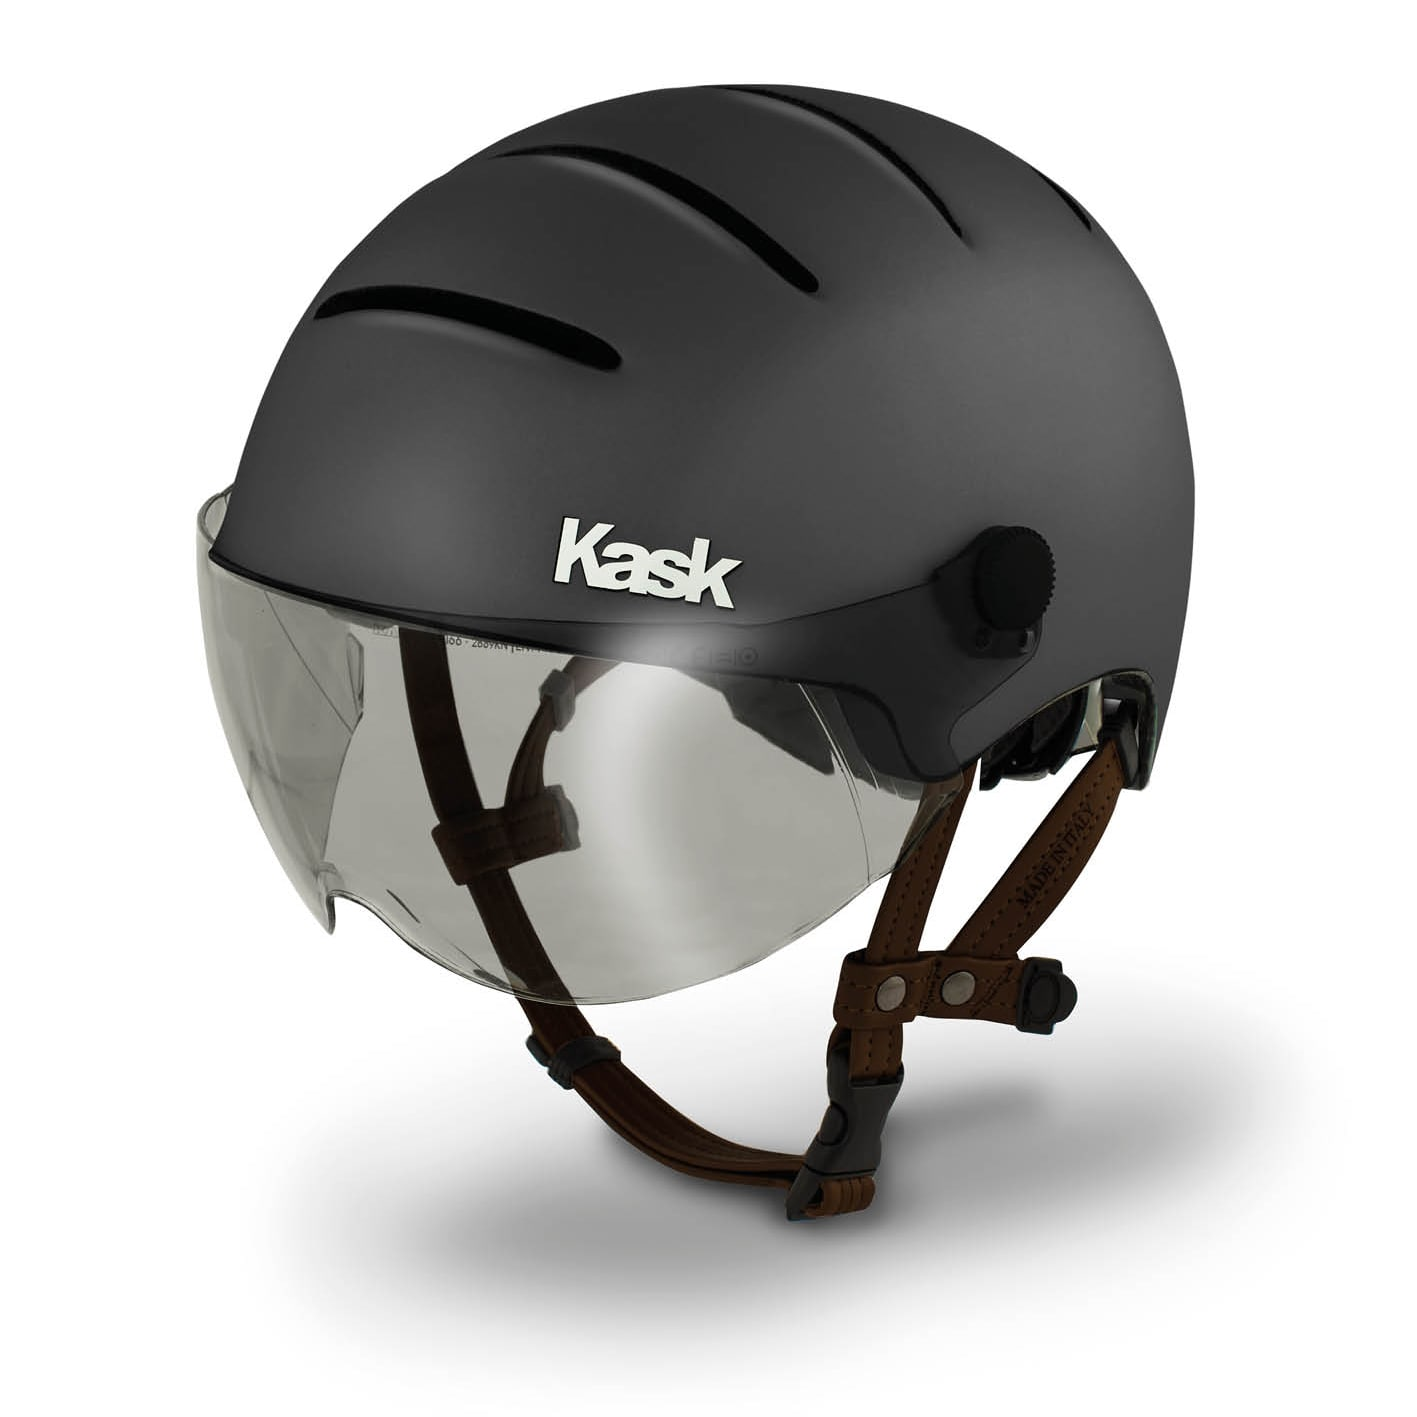 Casque Kask anthracite